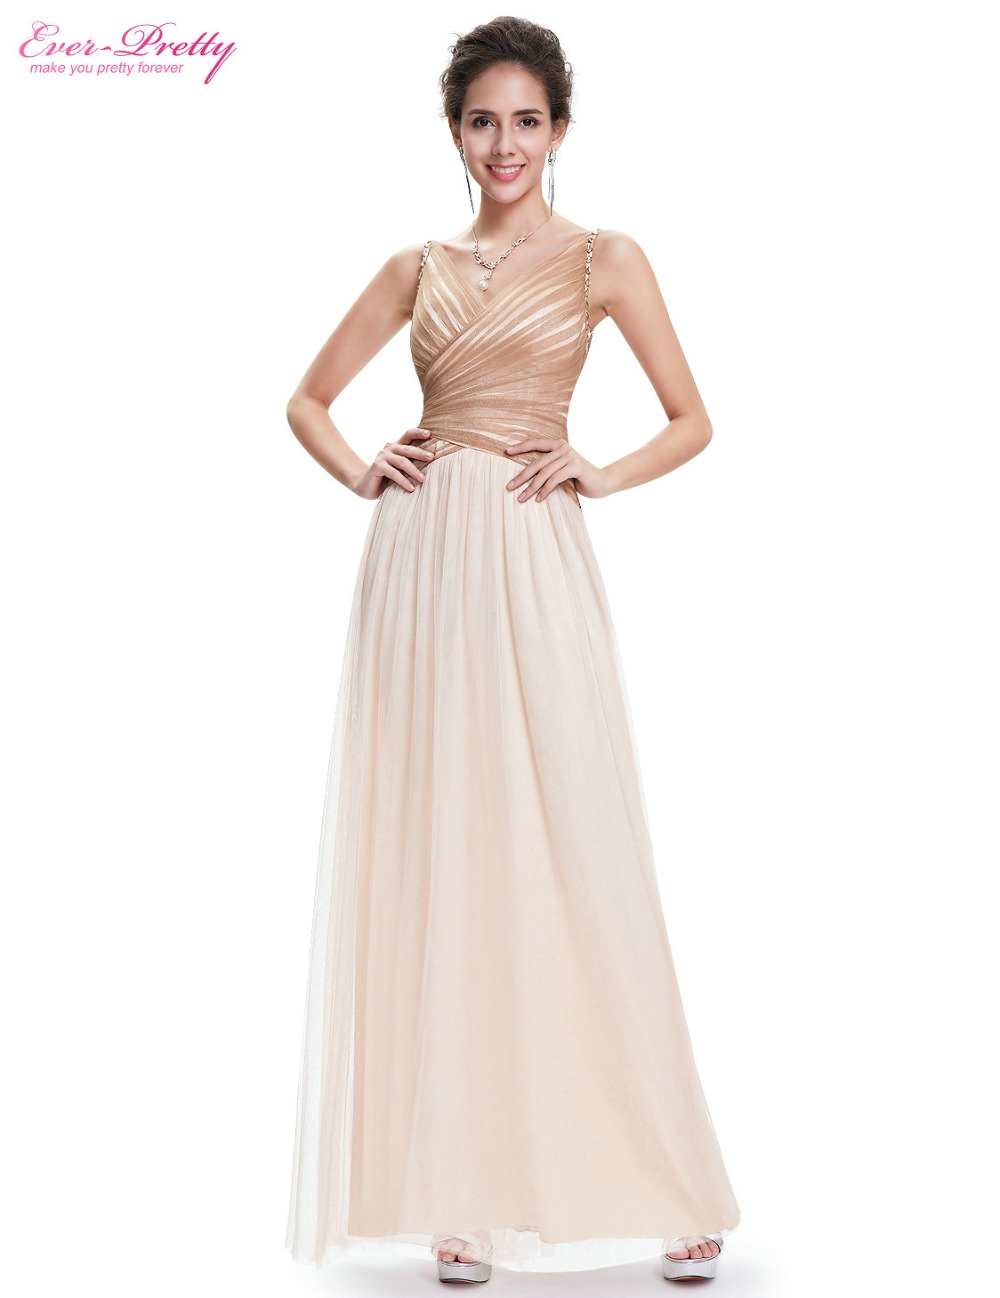 Prom dresses ever pretty he08493bg women sexy v neck for Plus size dresses weddings and proms